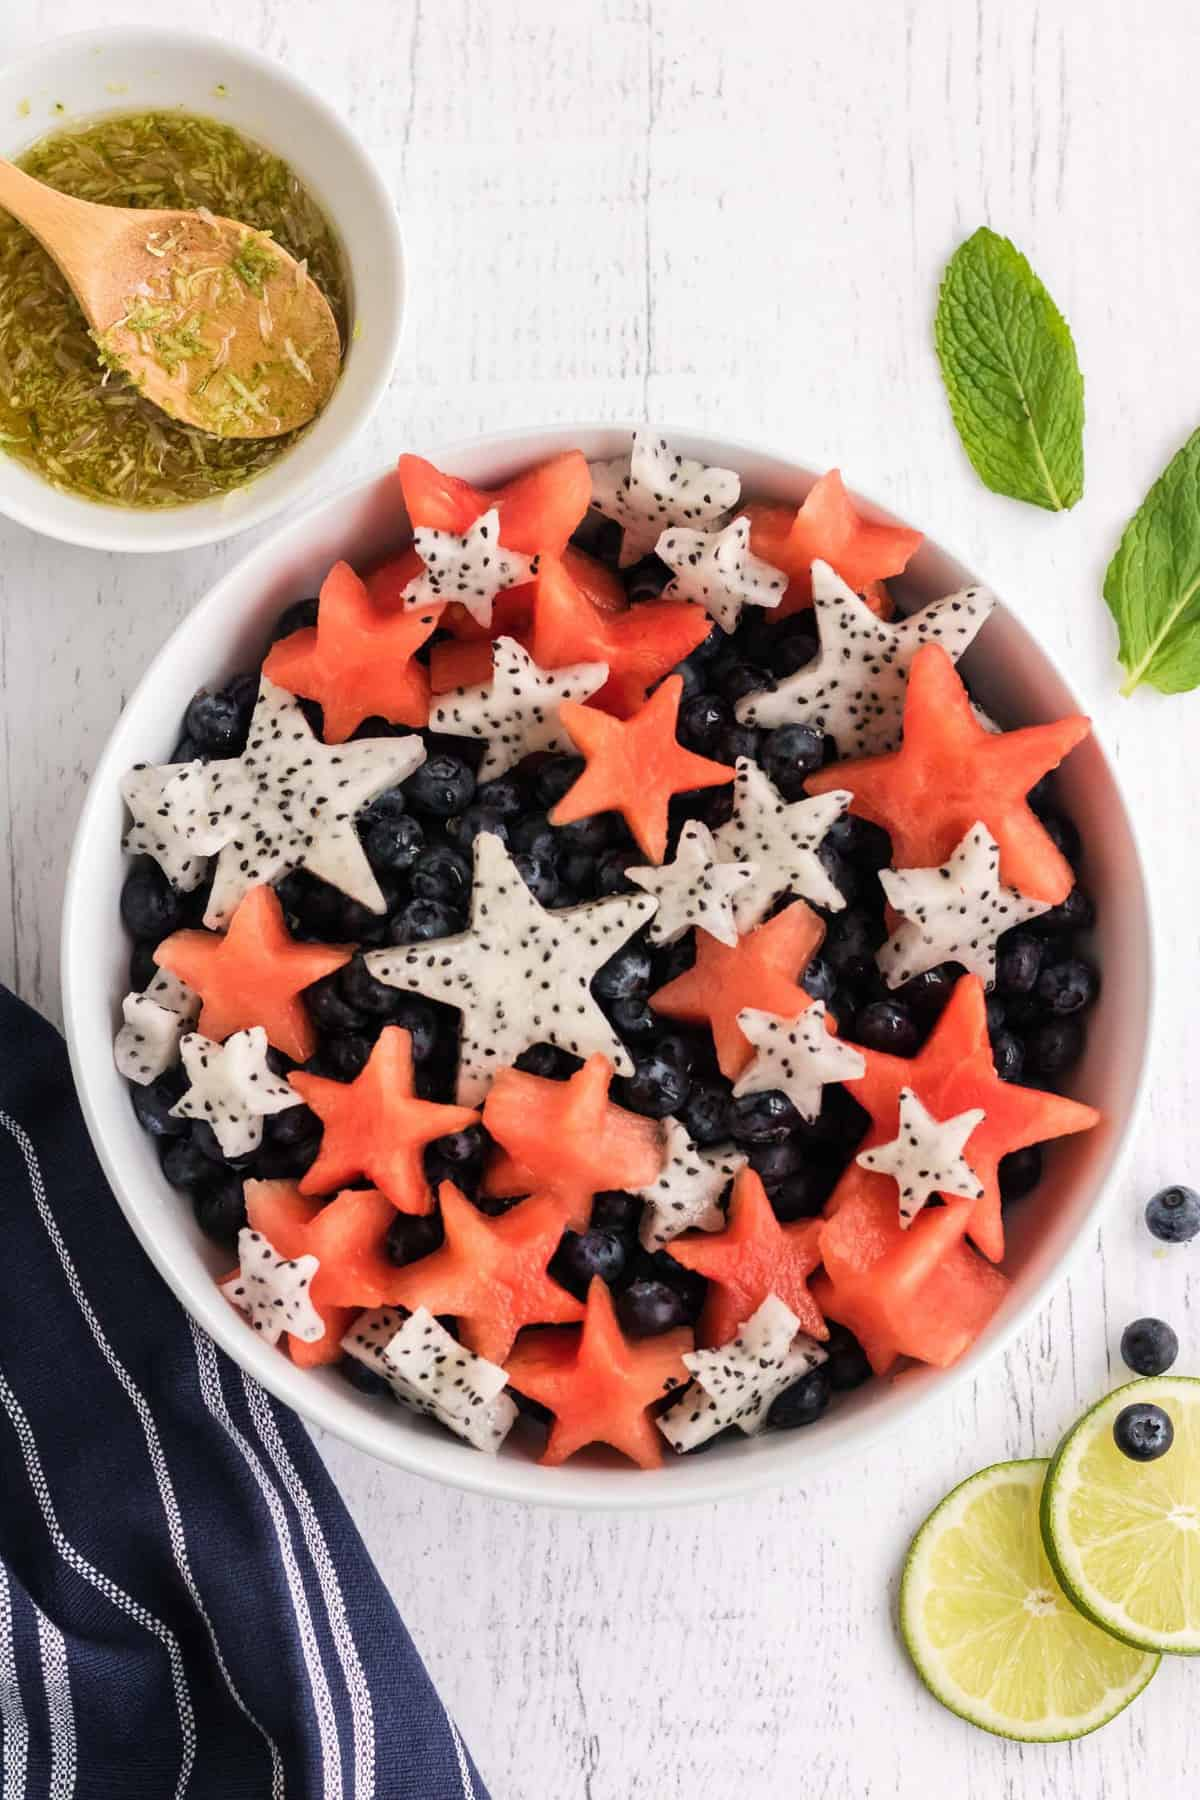 Overhead view of fruit salad with fruit cut into star shapes.